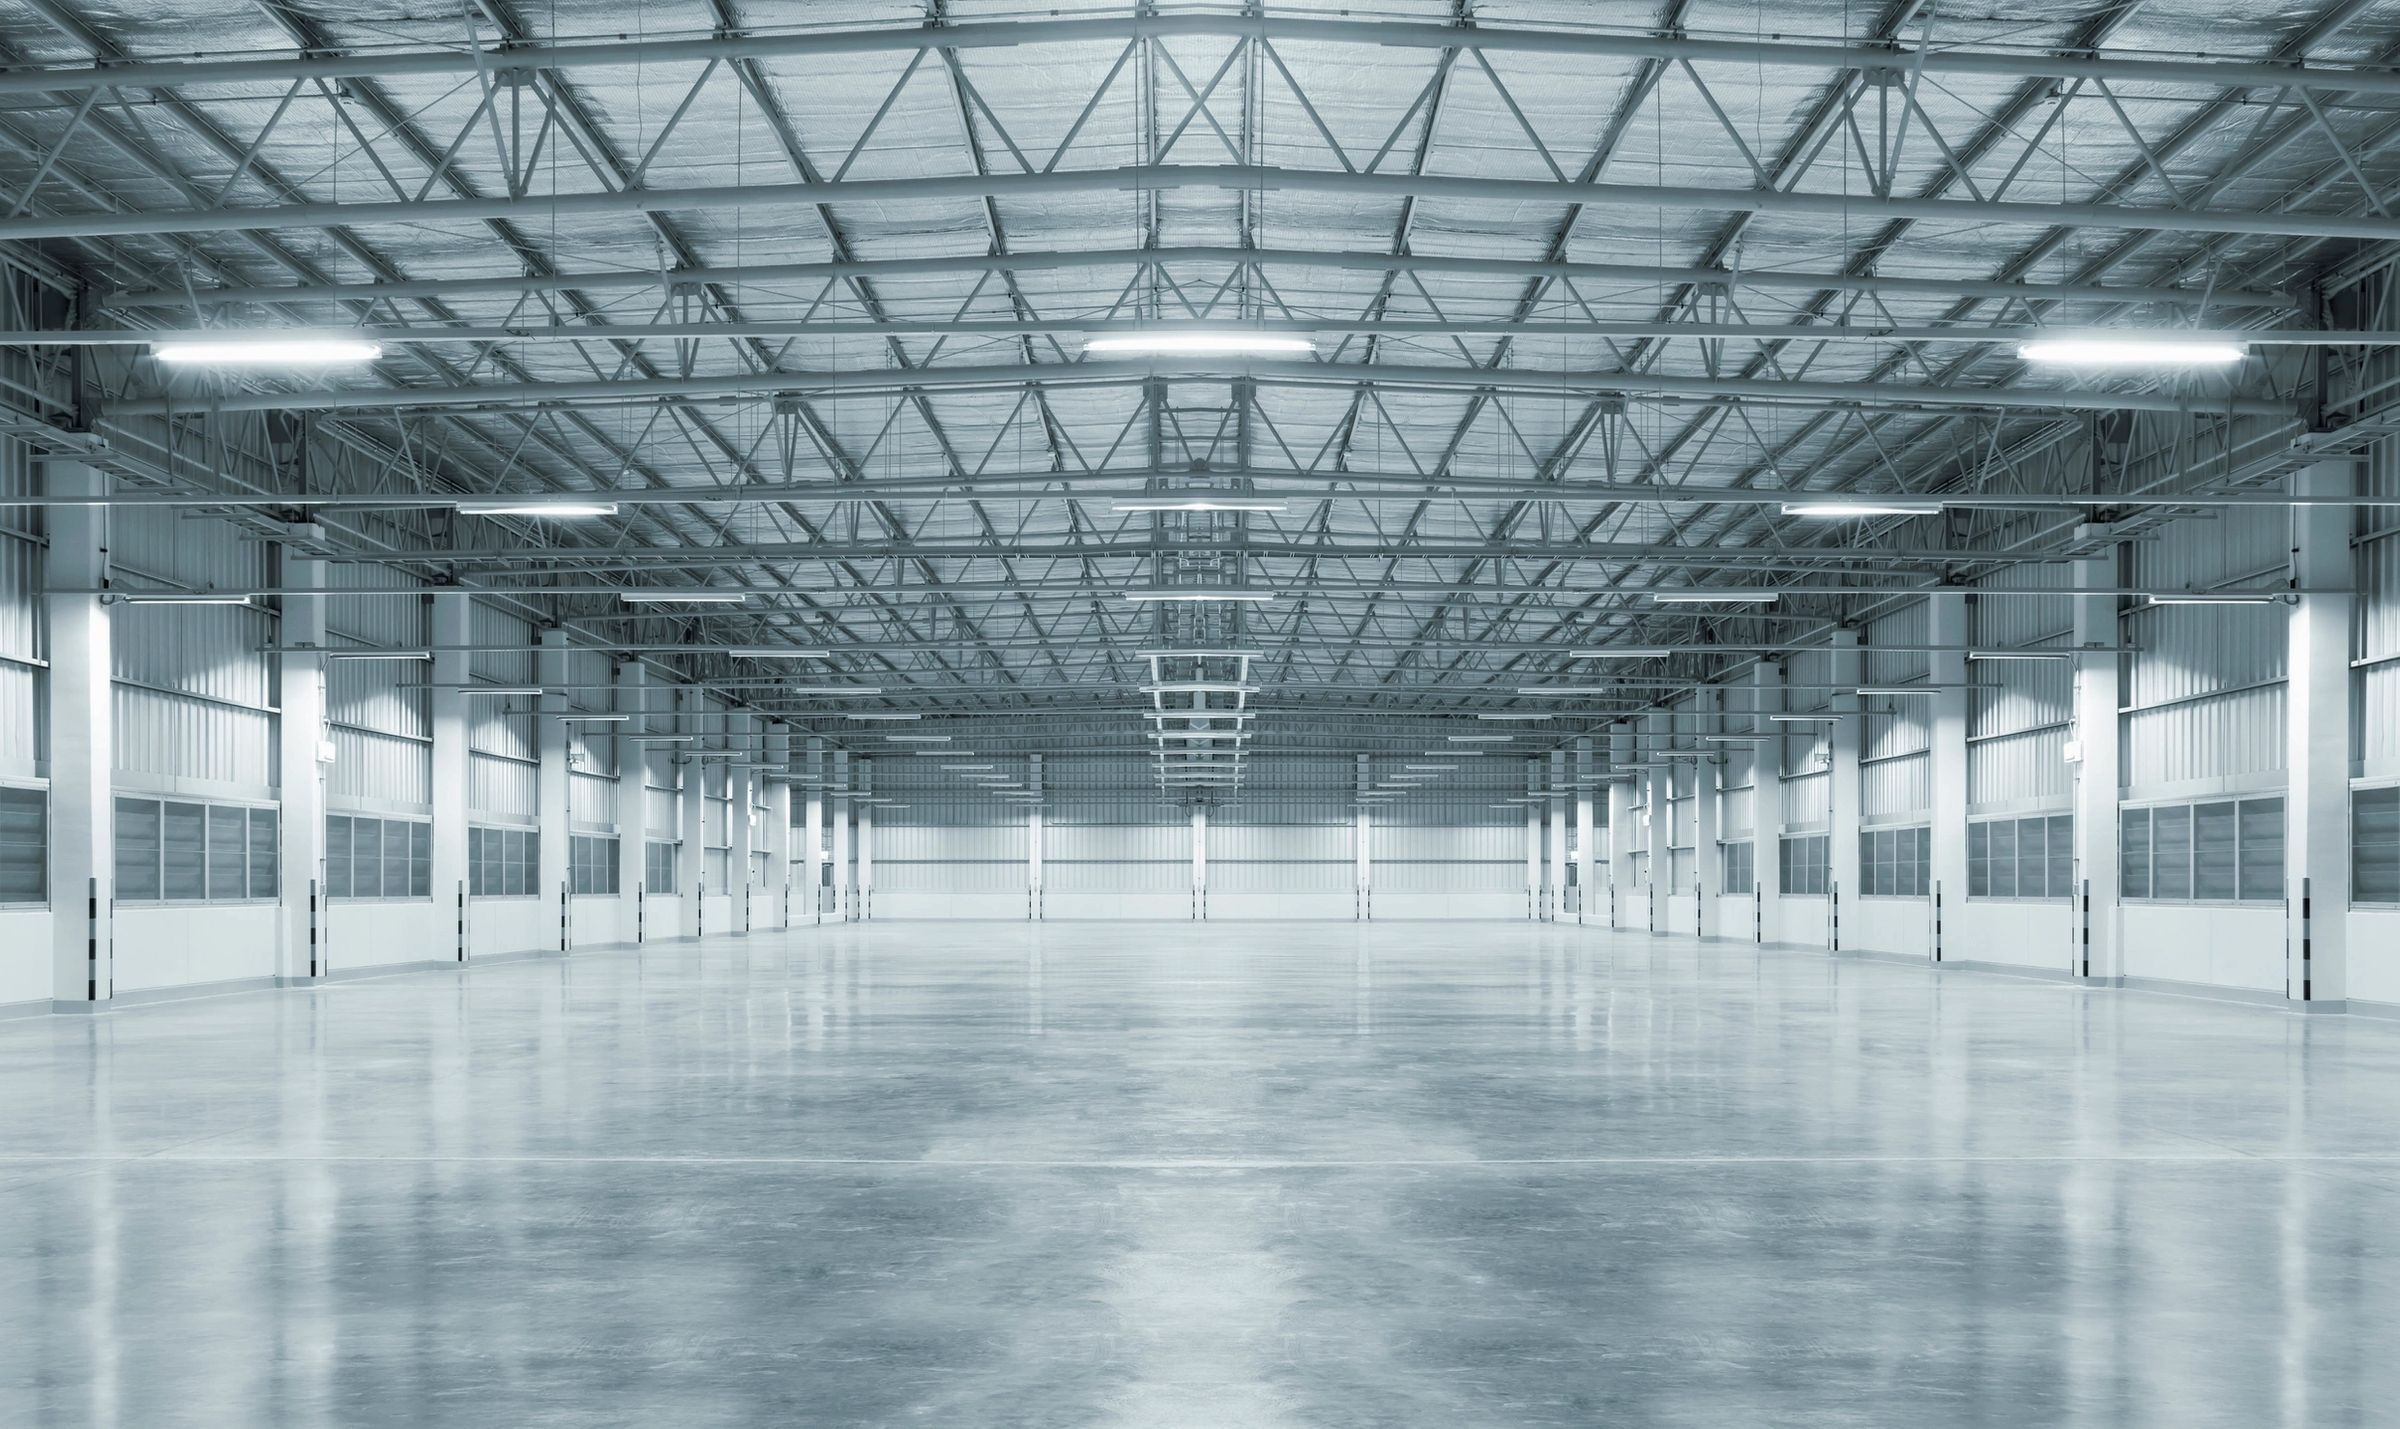 4 Warehouse Safety Issues and How to Solve Them